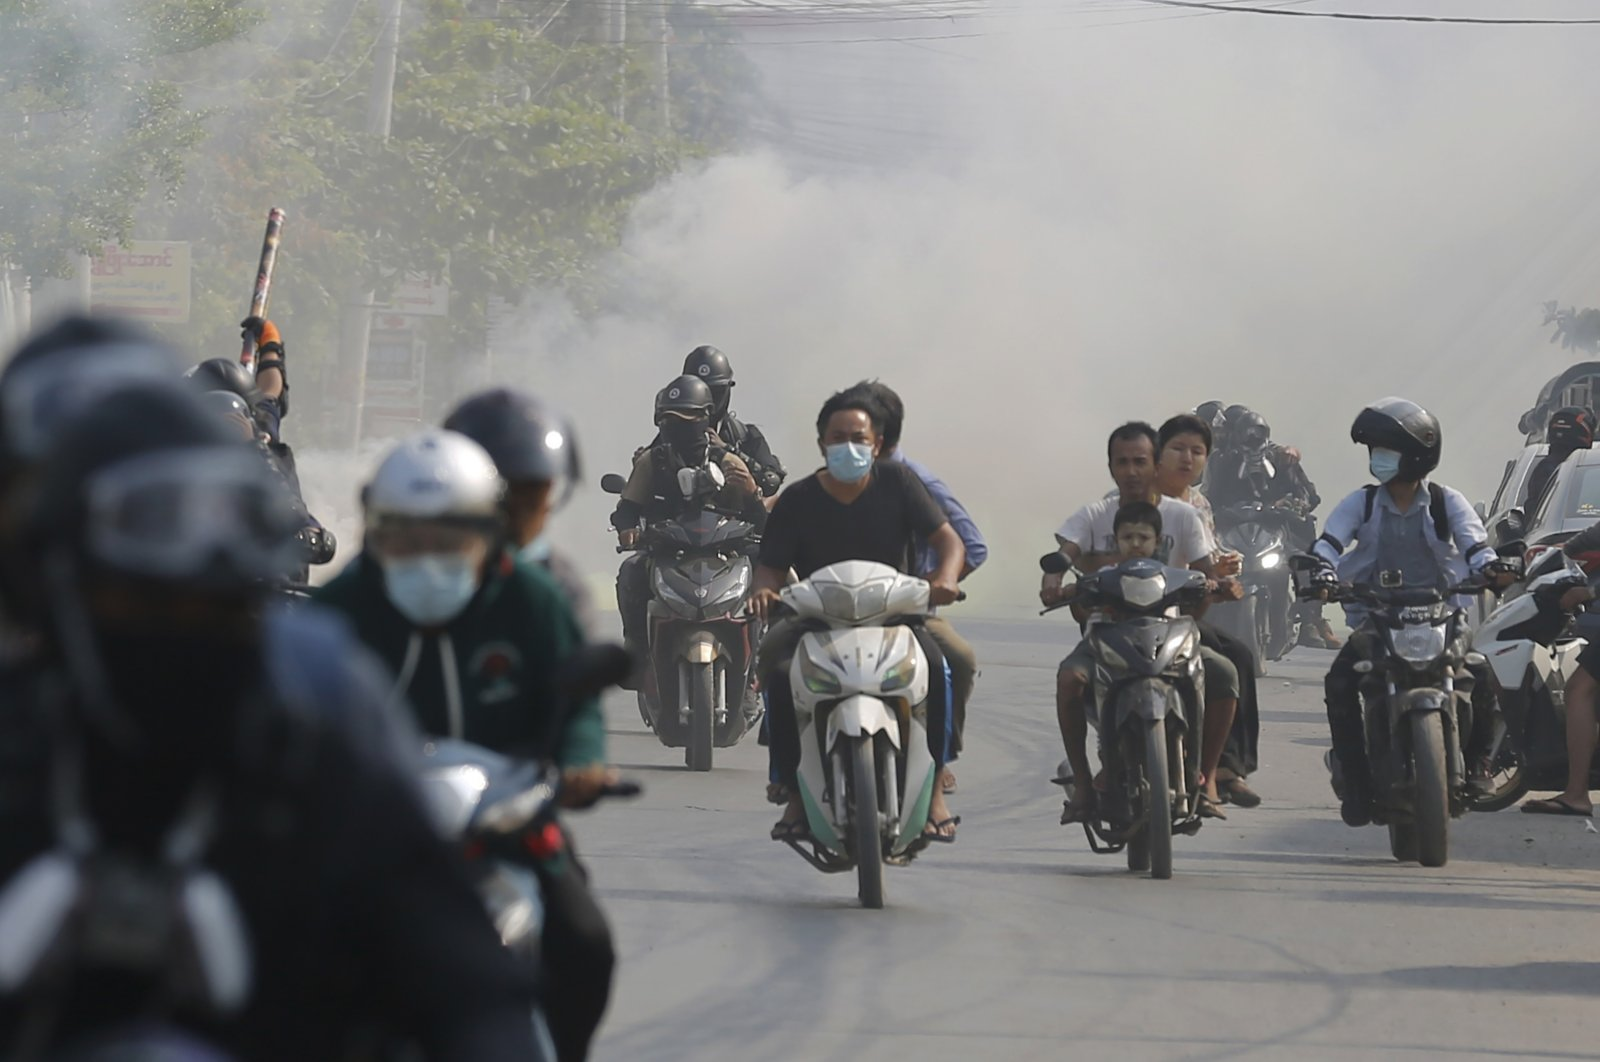 Protesters drive their motorcycles during an anti-coup protest in Mandalay, Myanmar, March 25, 2021. (AP Photo)